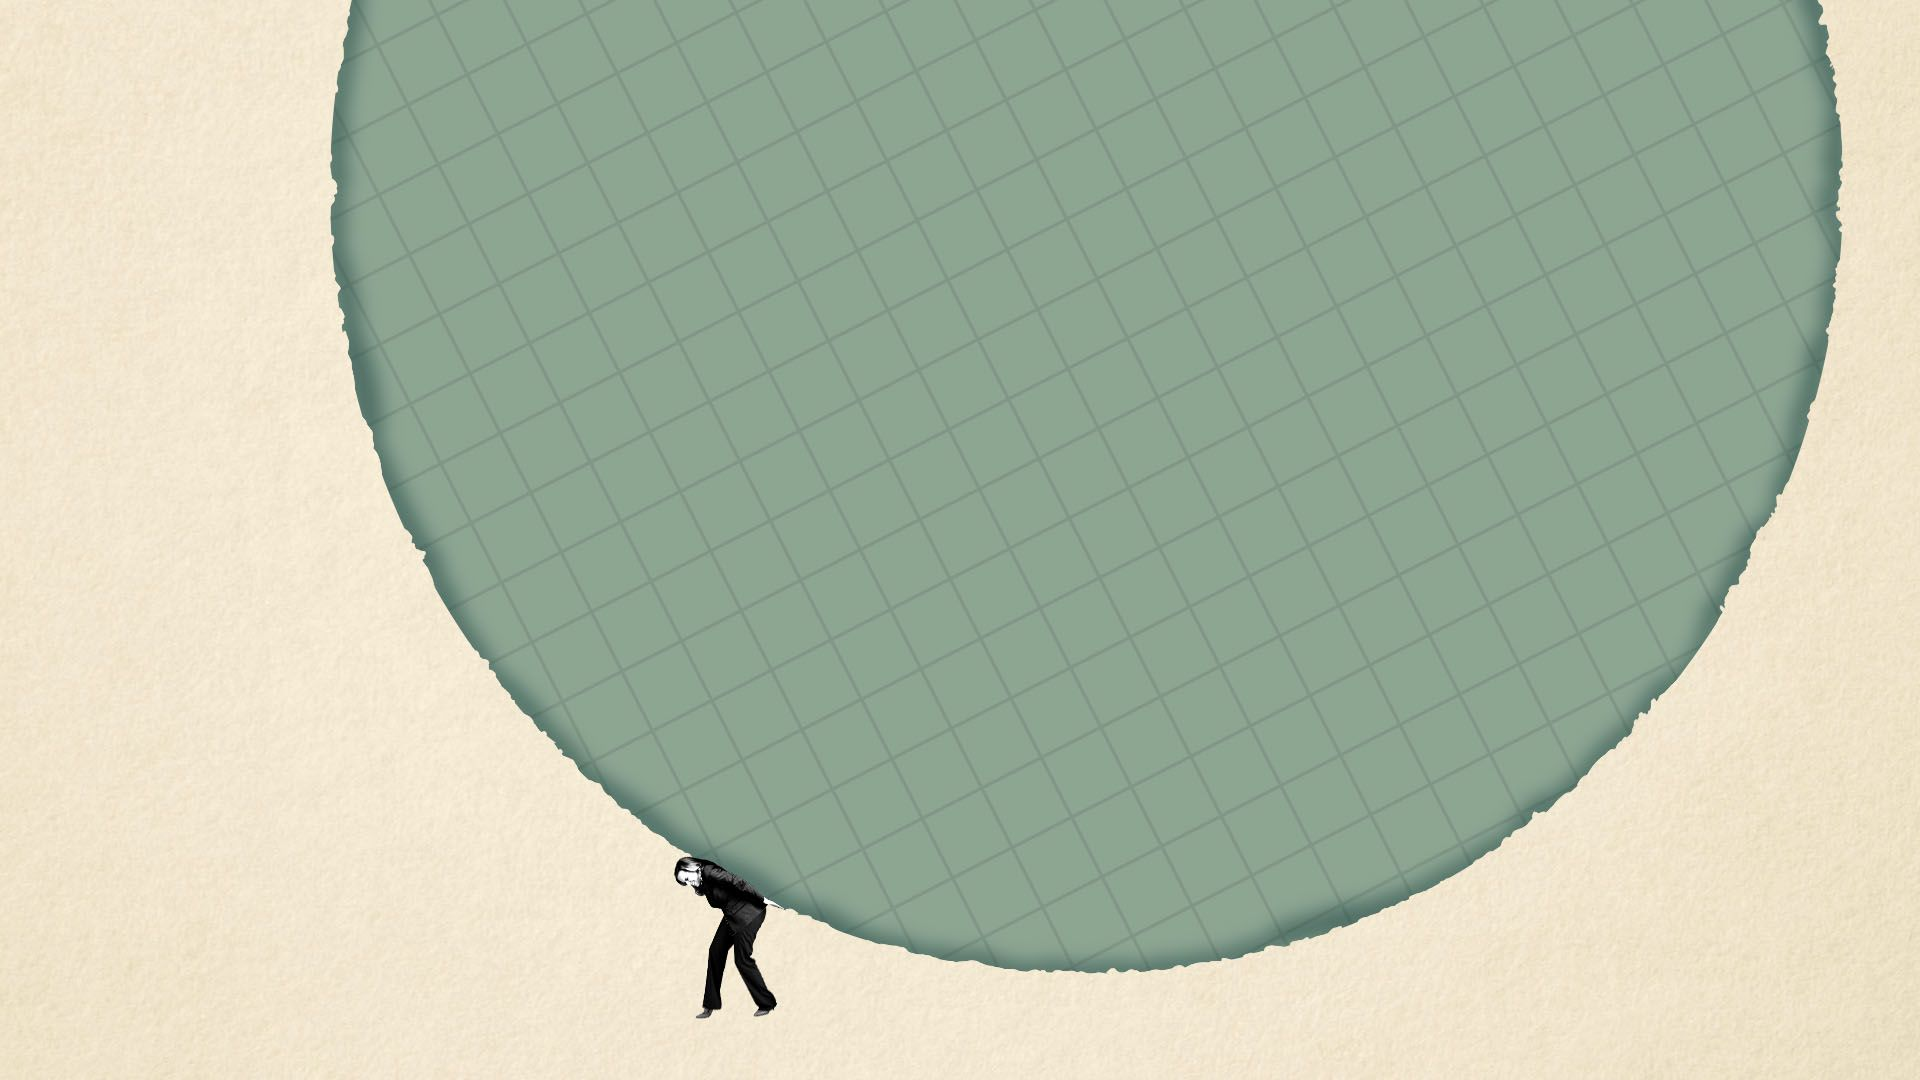 Illustration of a tiny woman holding up a giant circle